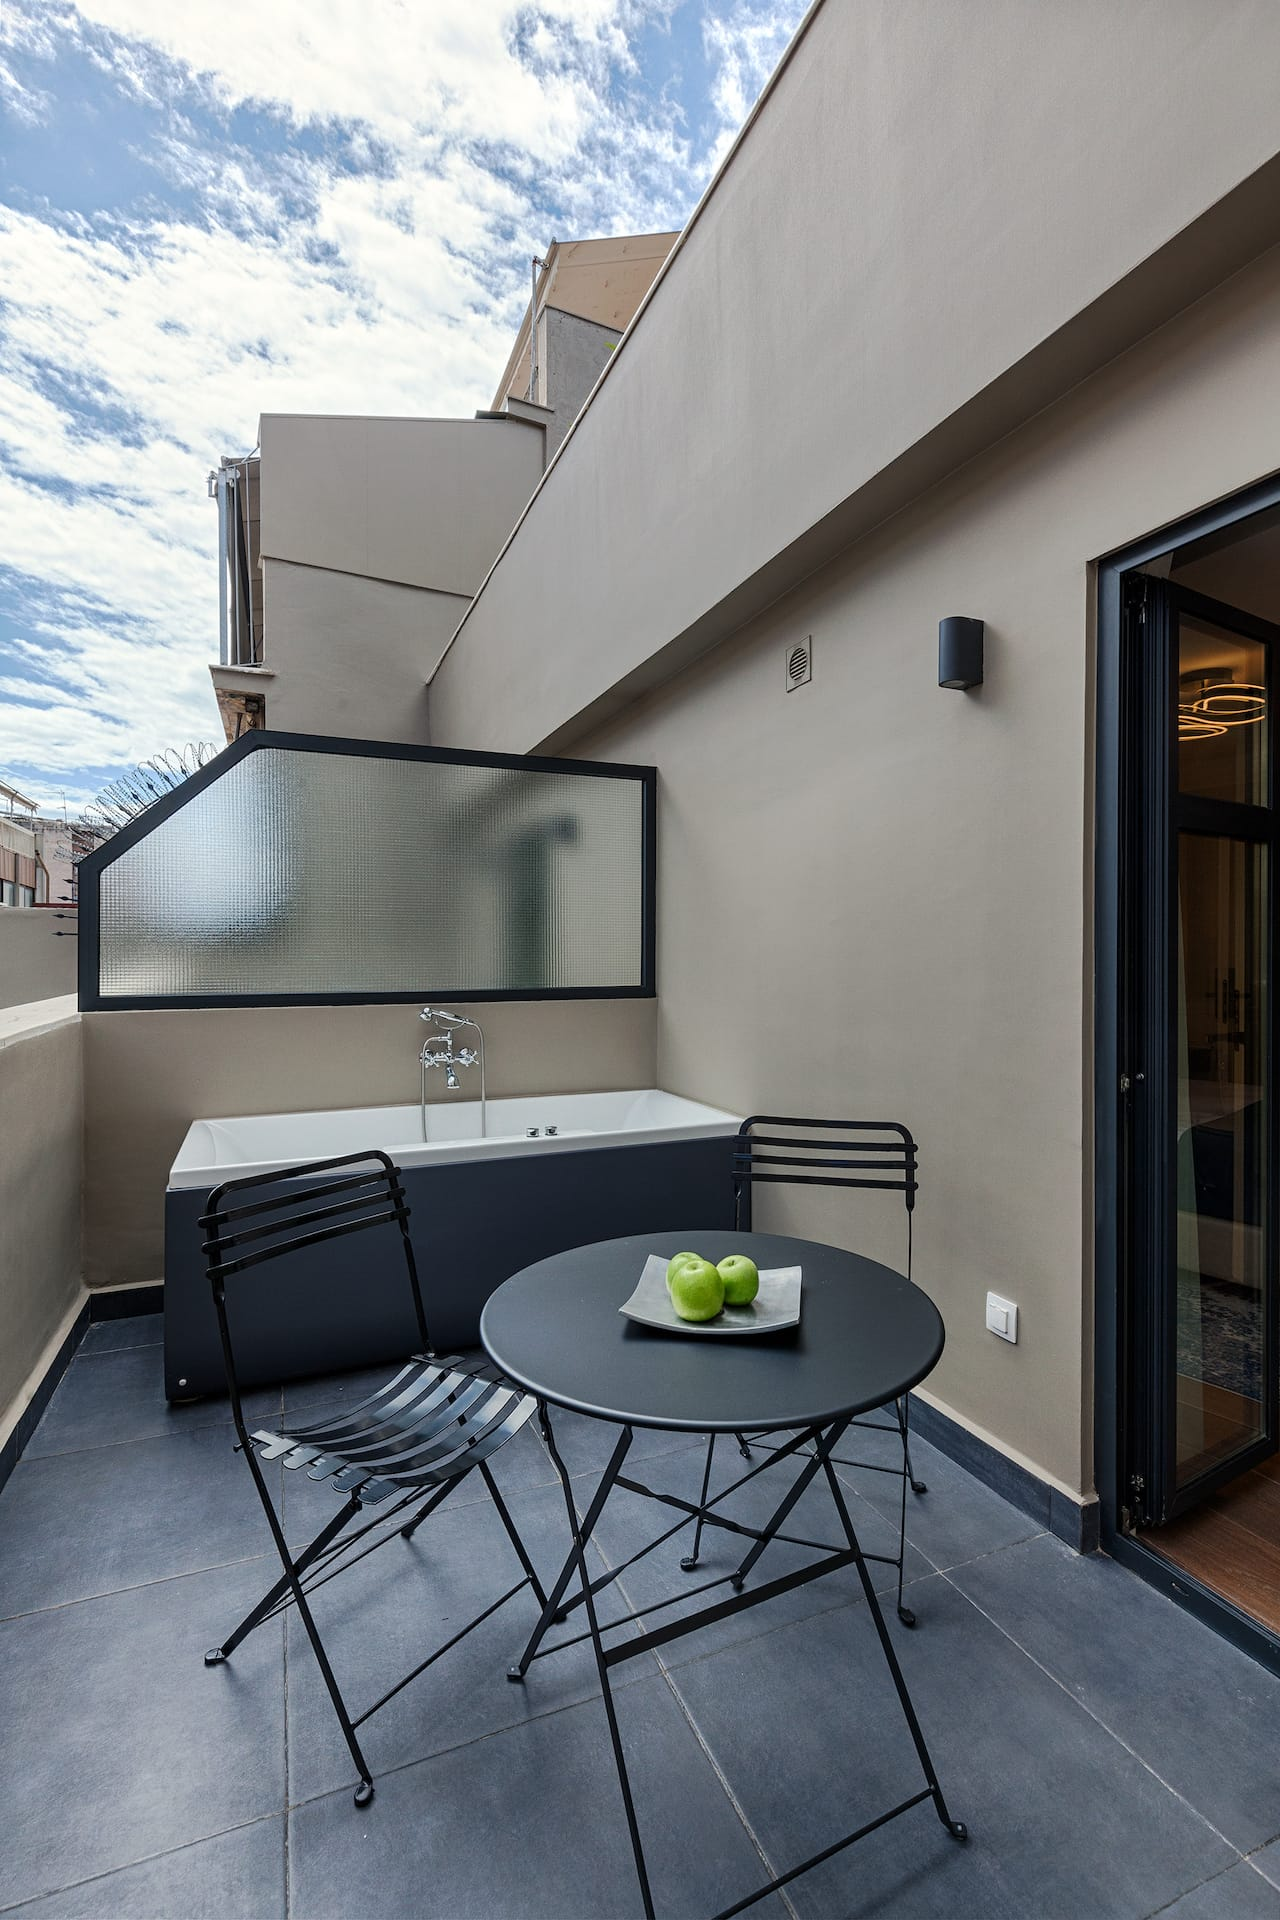 Outdoor hot tub, black tables and chairs located on the veranda of the Deluxe Room Hot Tub.